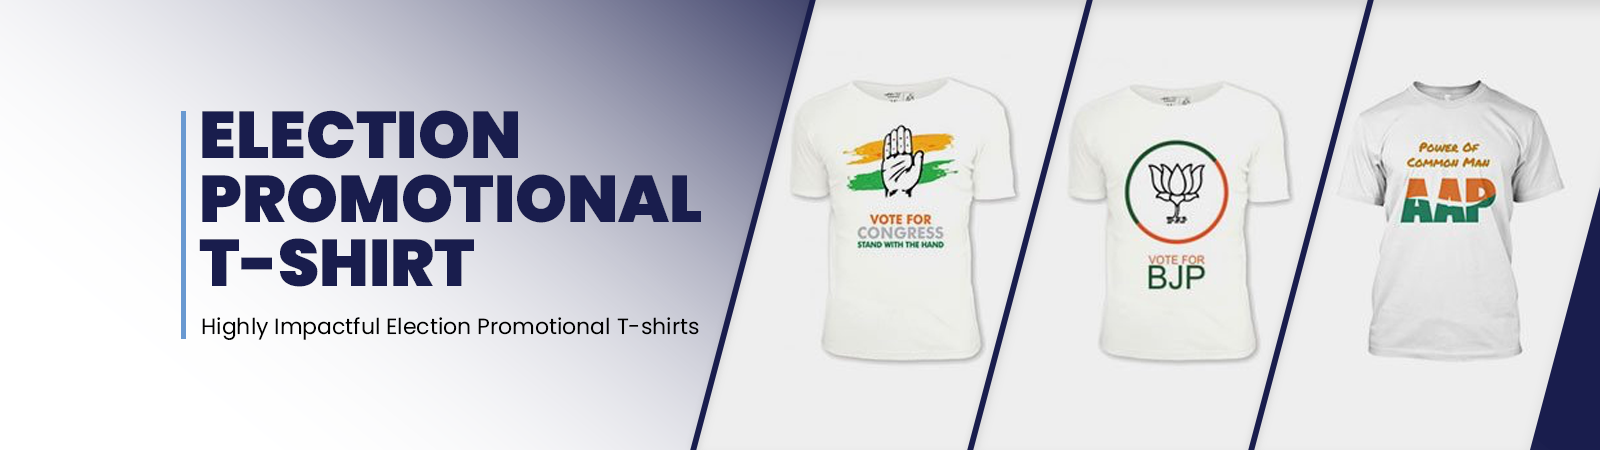 Election Promotional T-Shirt